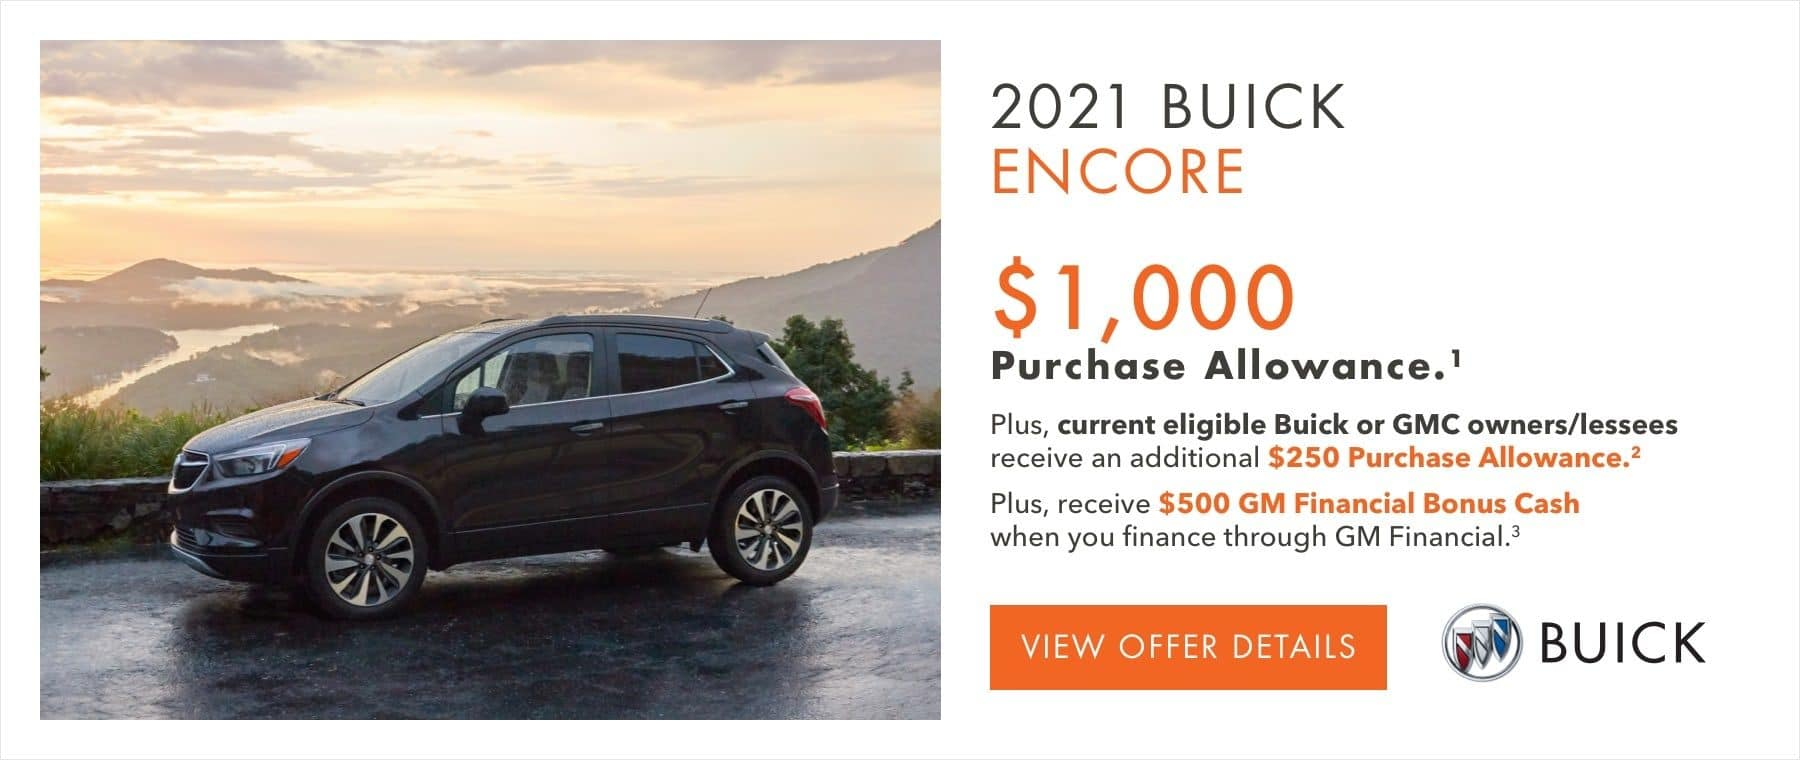 $1,000 Purchase Allowance.1 Plus, current eligible Buick or GMC owners/lessees receive an additional $250 Purchase Allowance.2 Plus, receive $500 GM Financial Bonus Cash when you finance through GM Financial.3